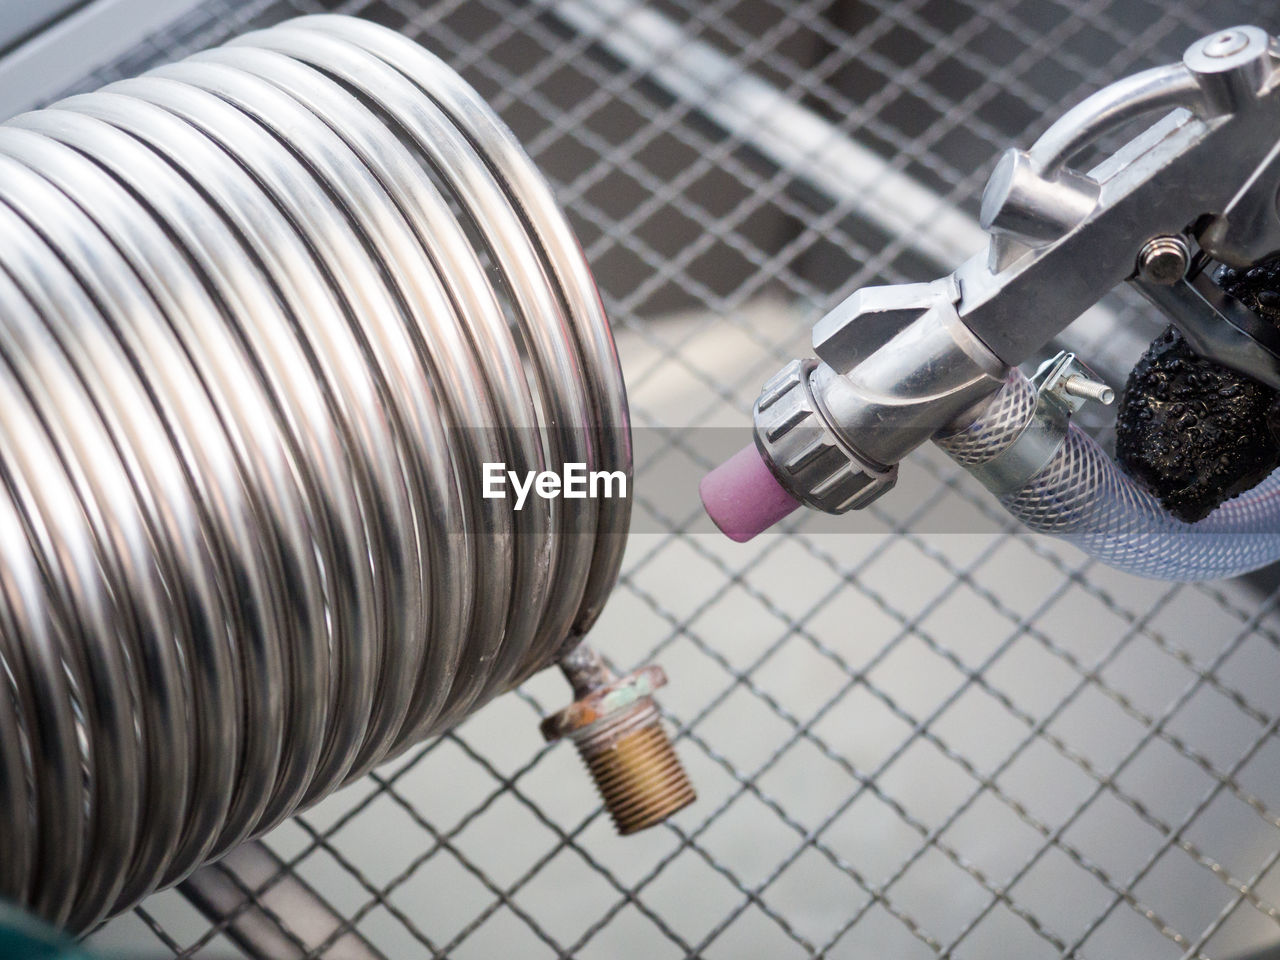 metal, close-up, technology, indoors, no people, high angle view, fuel and power generation, connection, equipment, electricity, machinery, smoking issues, still life, silver colored, focus on foreground, pattern, social issues, selective focus, environment, communication, steel, power supply